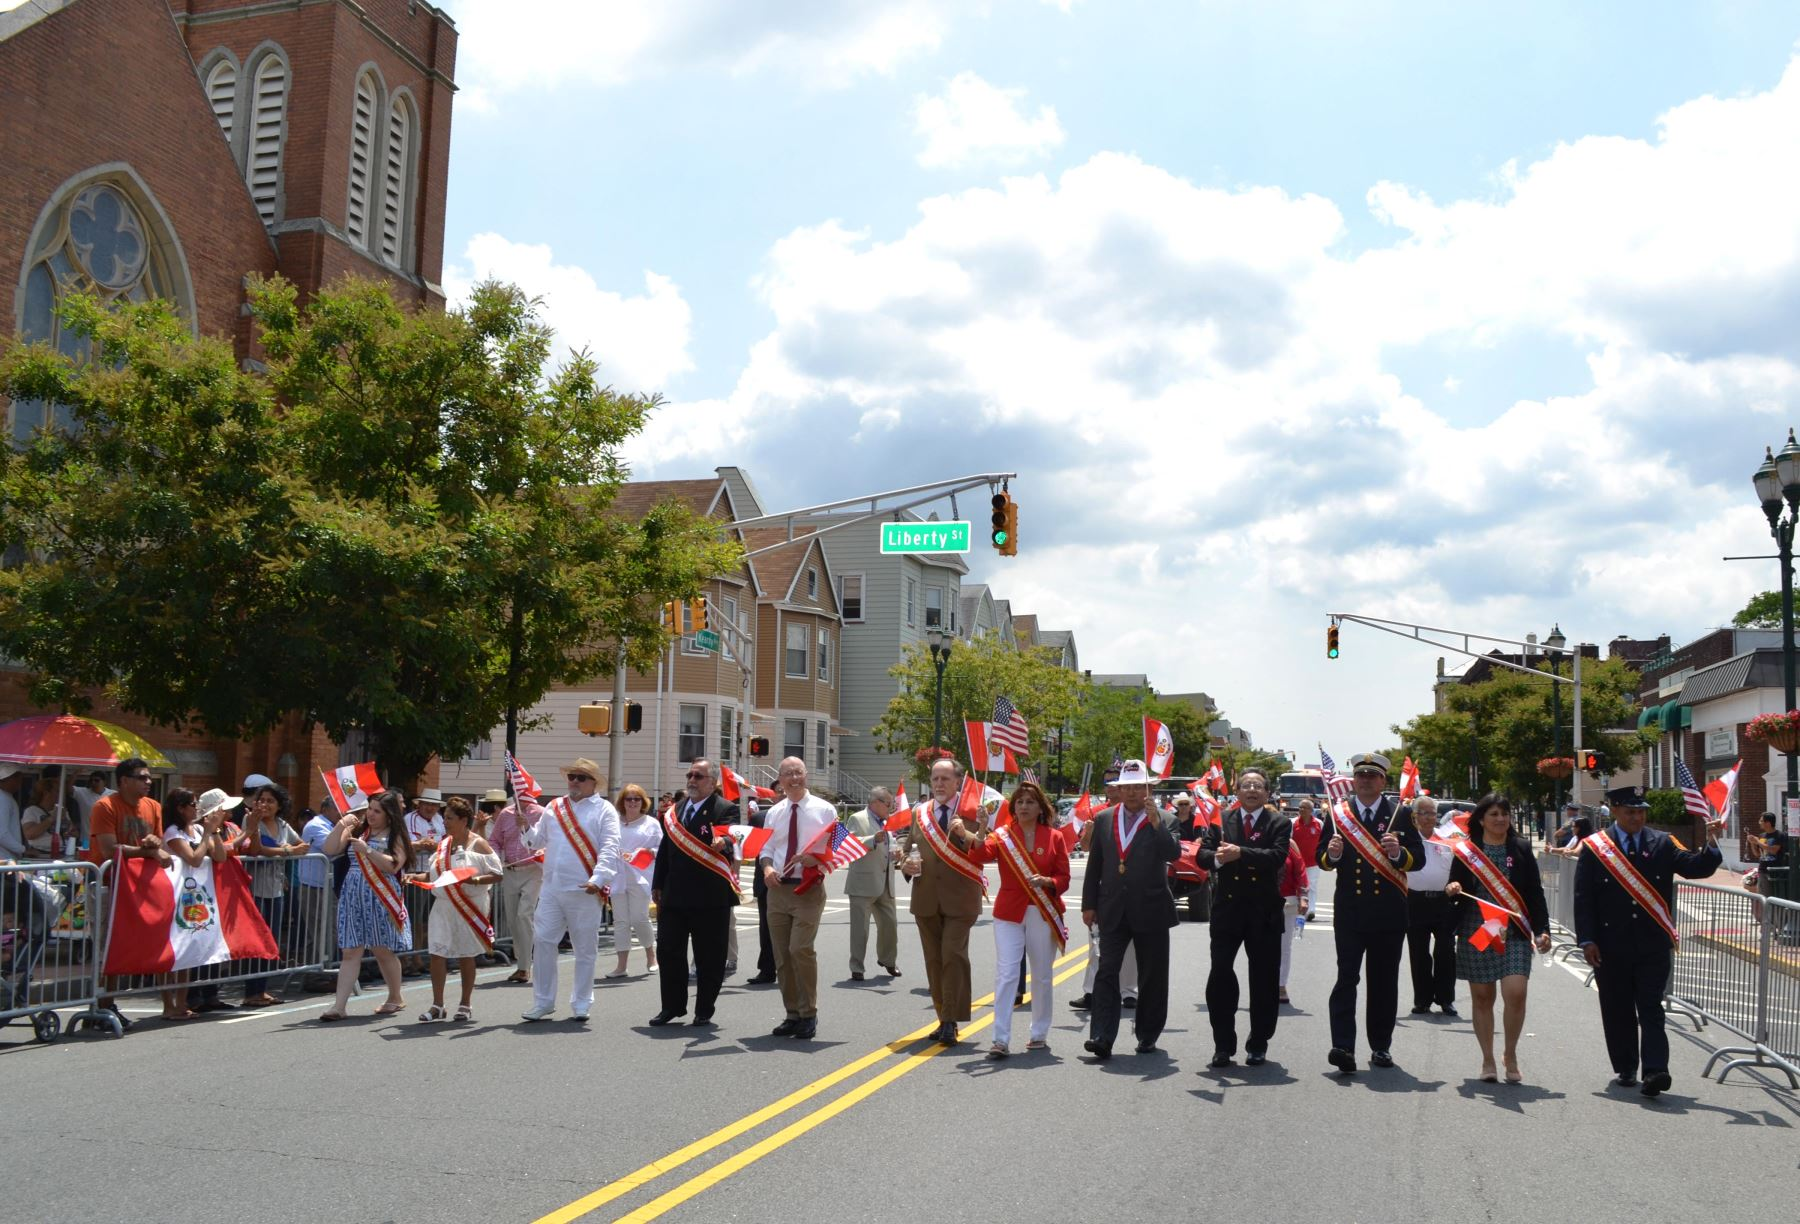 Peruvians celebrate Independence Day in the United States.